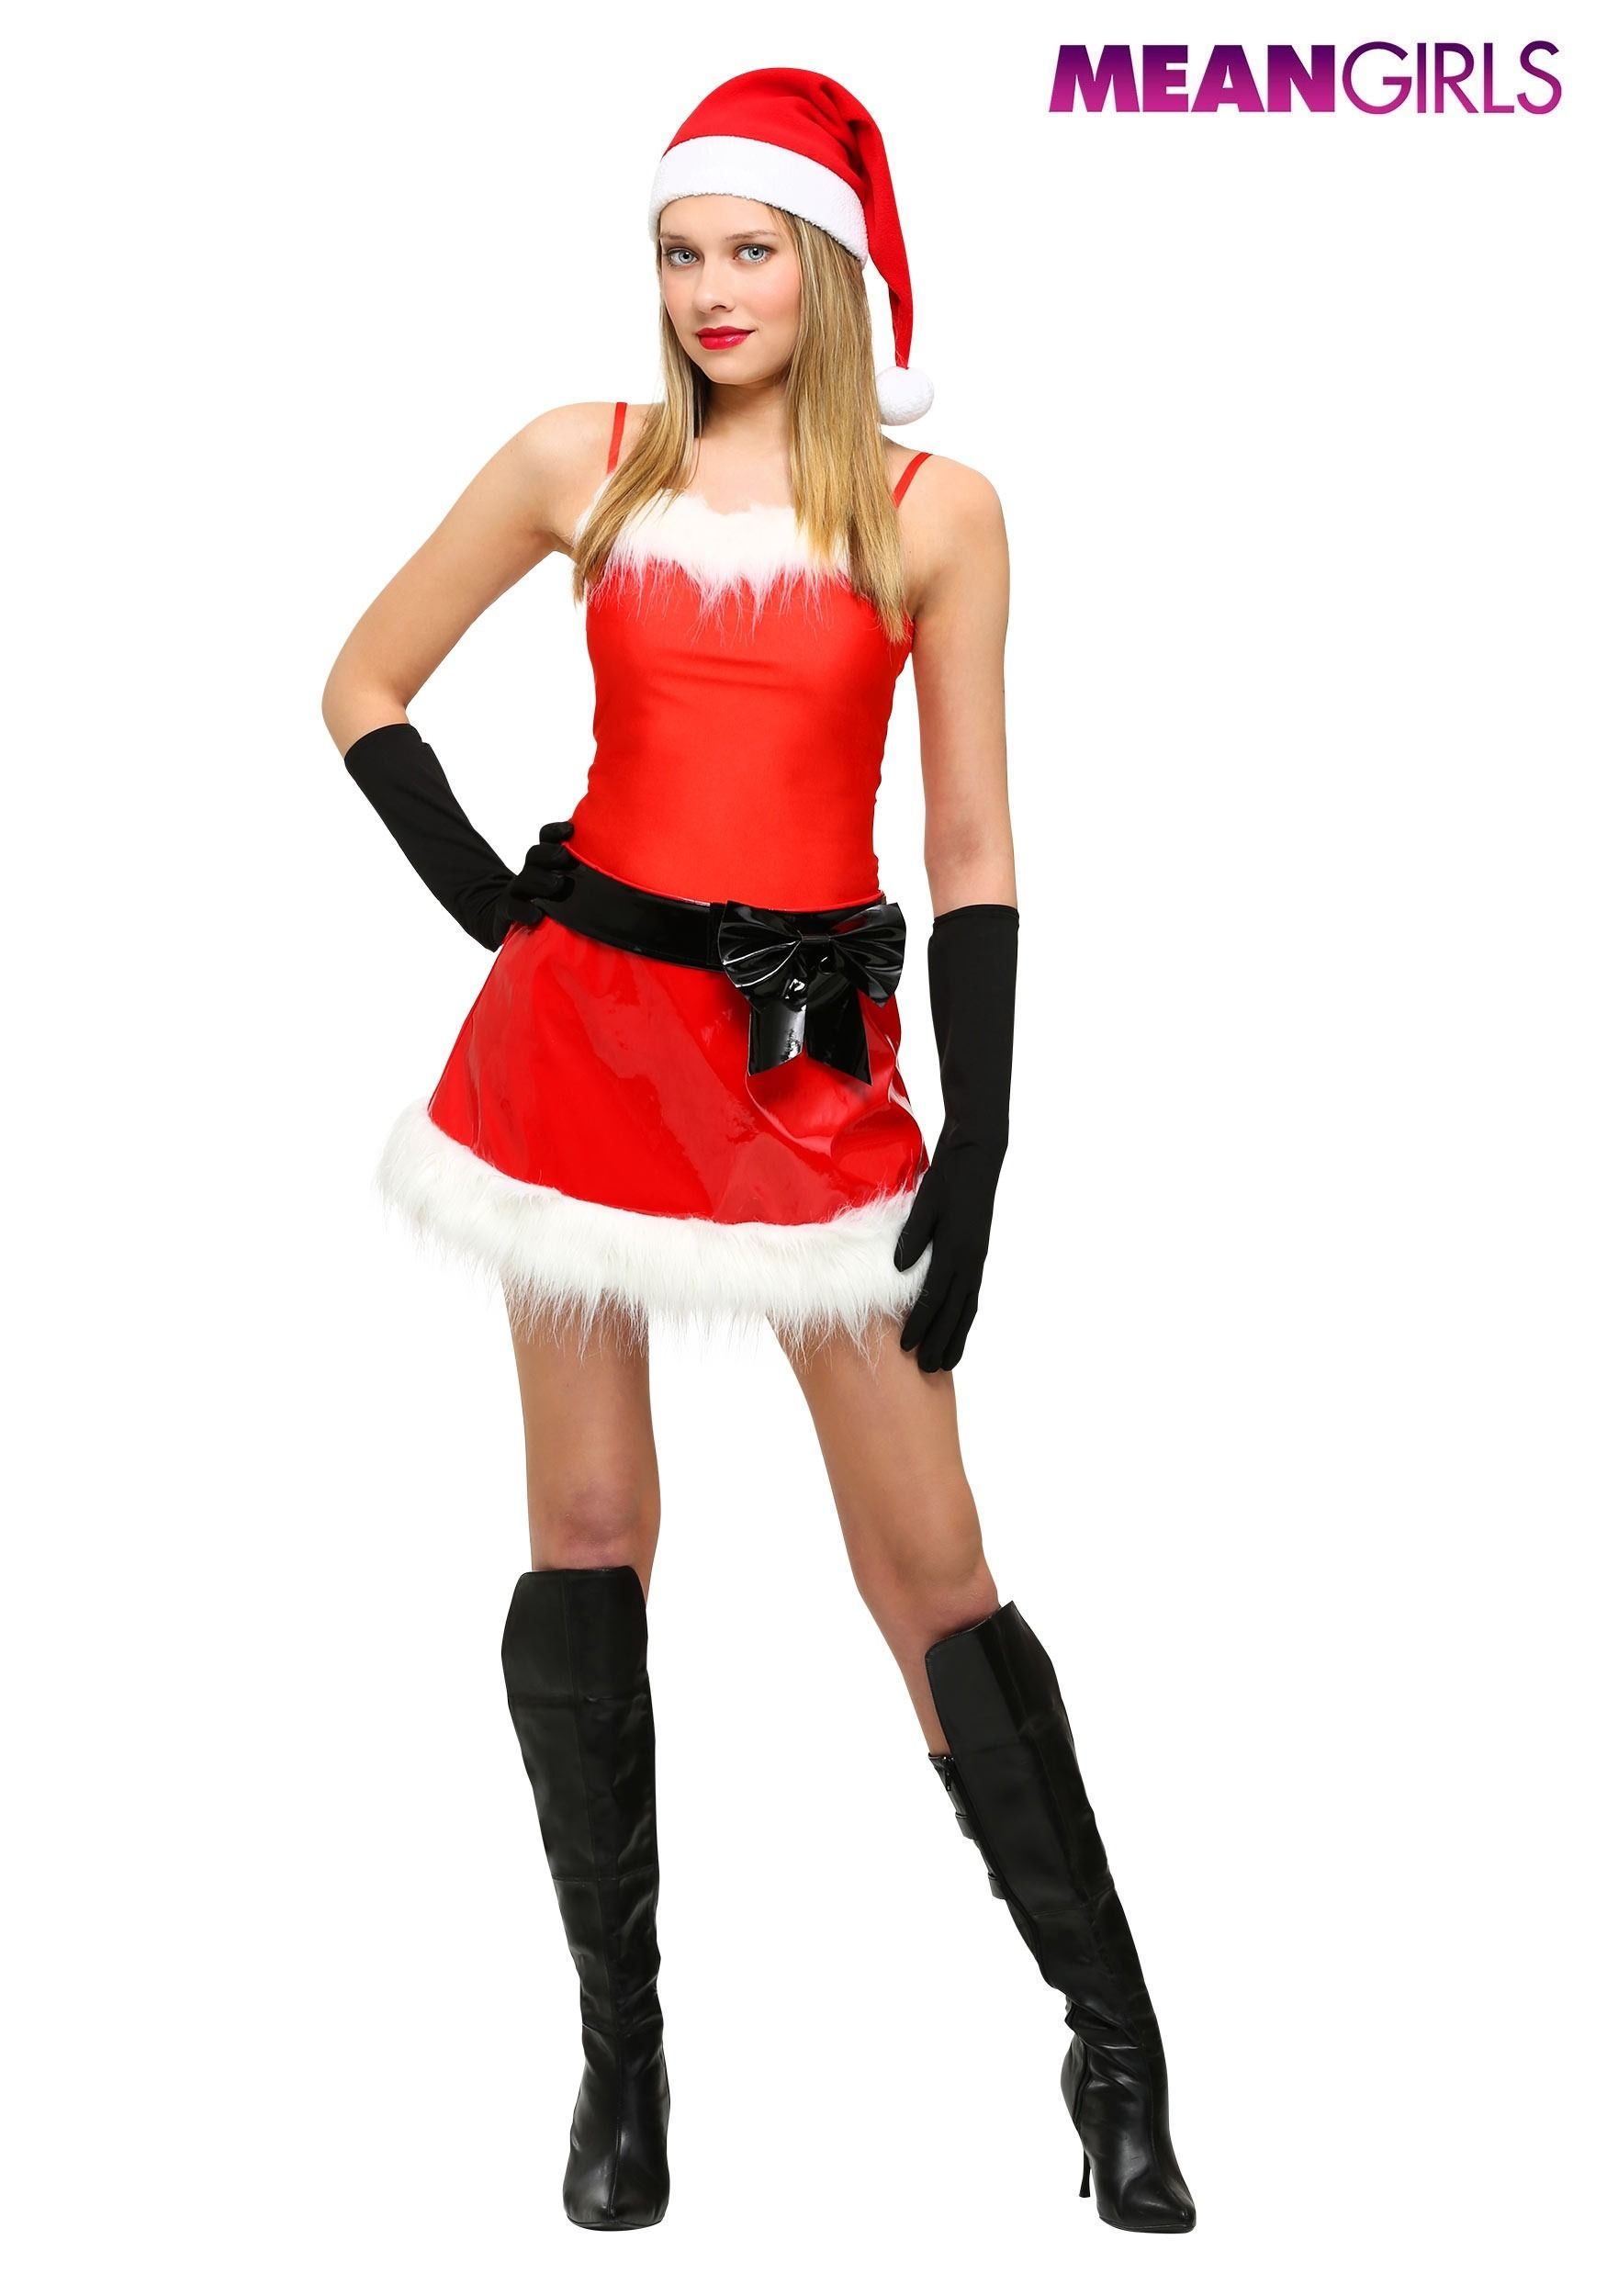 This Mean Girls Christmas Costume is an officially licensed exclusive costume from this popular movie starring Lindsay Lohan.  sc 1 st  Pinterest & Mean Girls Christmas Costume | Cheer competition ideas | Pinterest ...